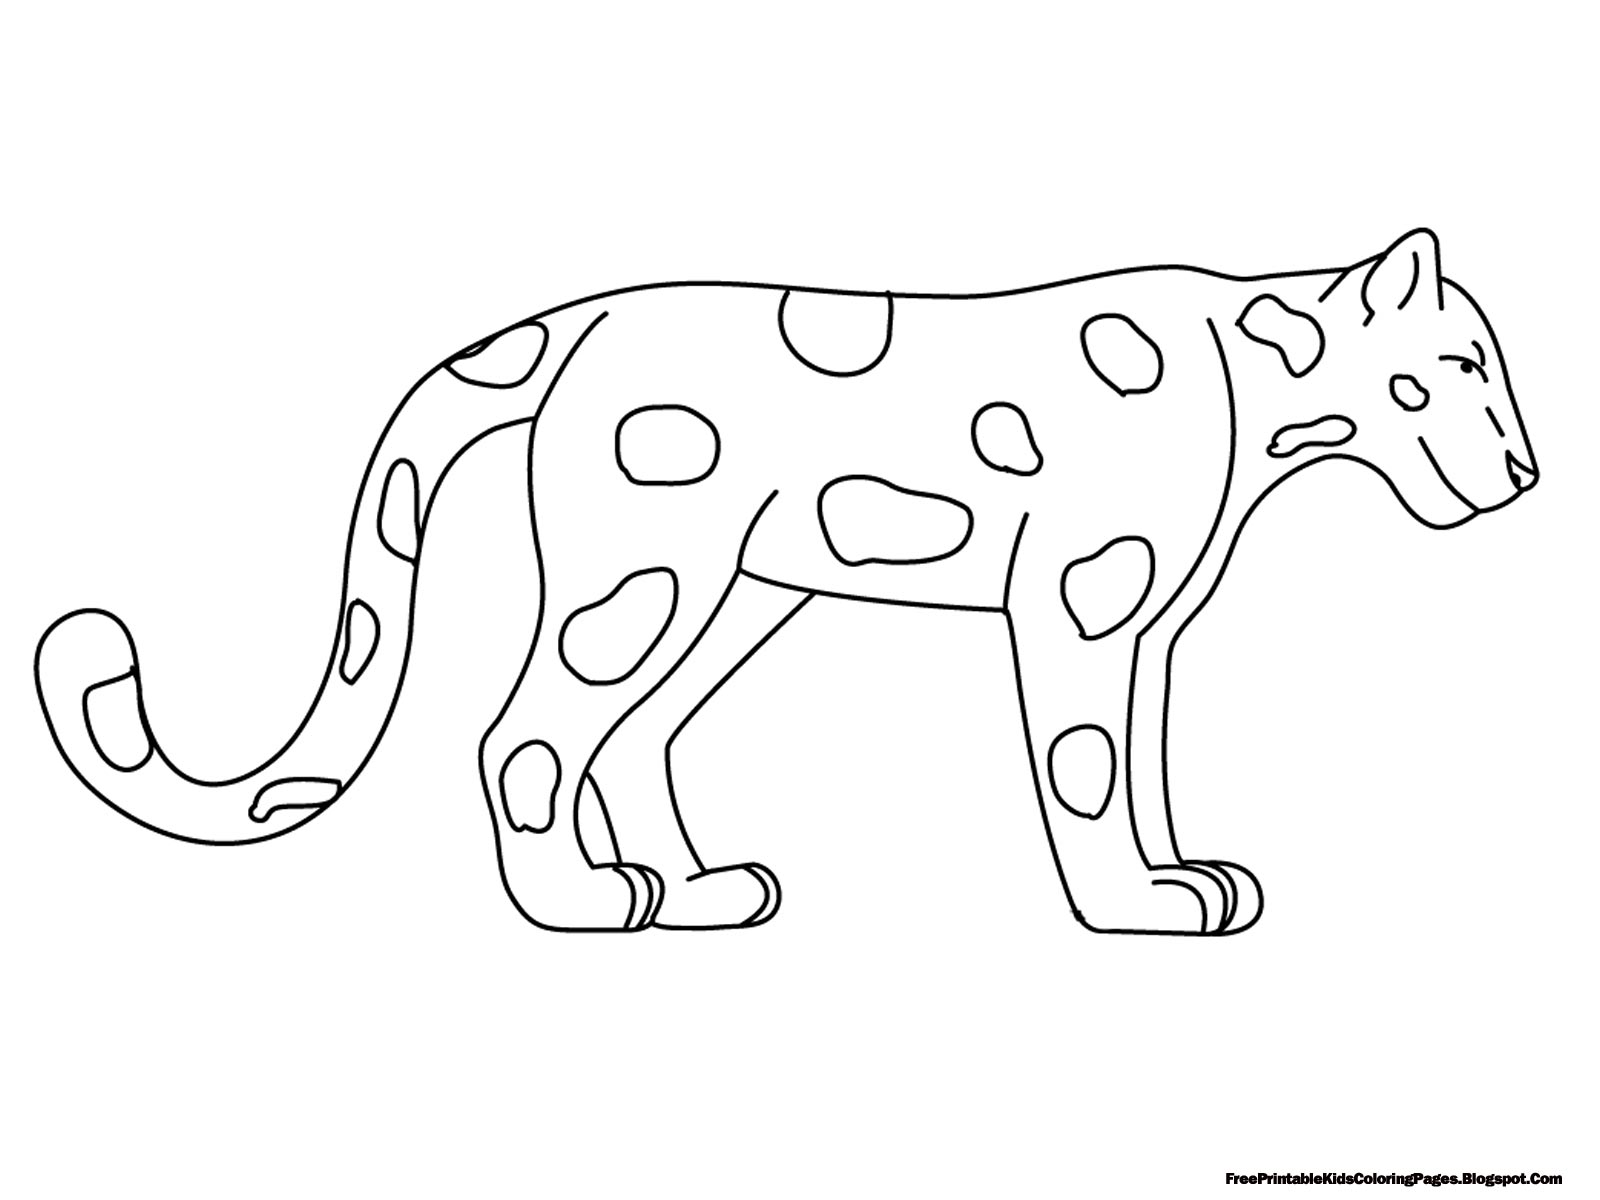 coloring printable jungle animals free rainforest coloring pages free coloring pages printable jungle animals coloring